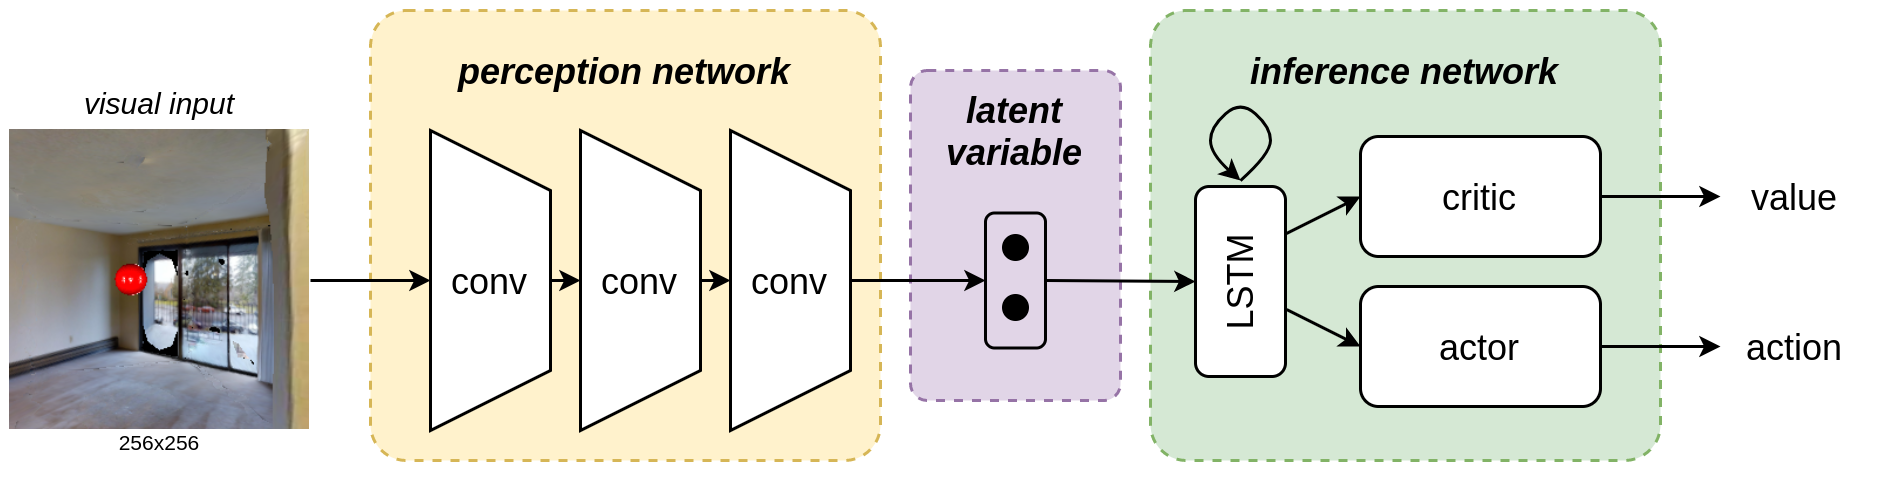 A network architecture of a navigation agent, which consists of the perception and inference networks.